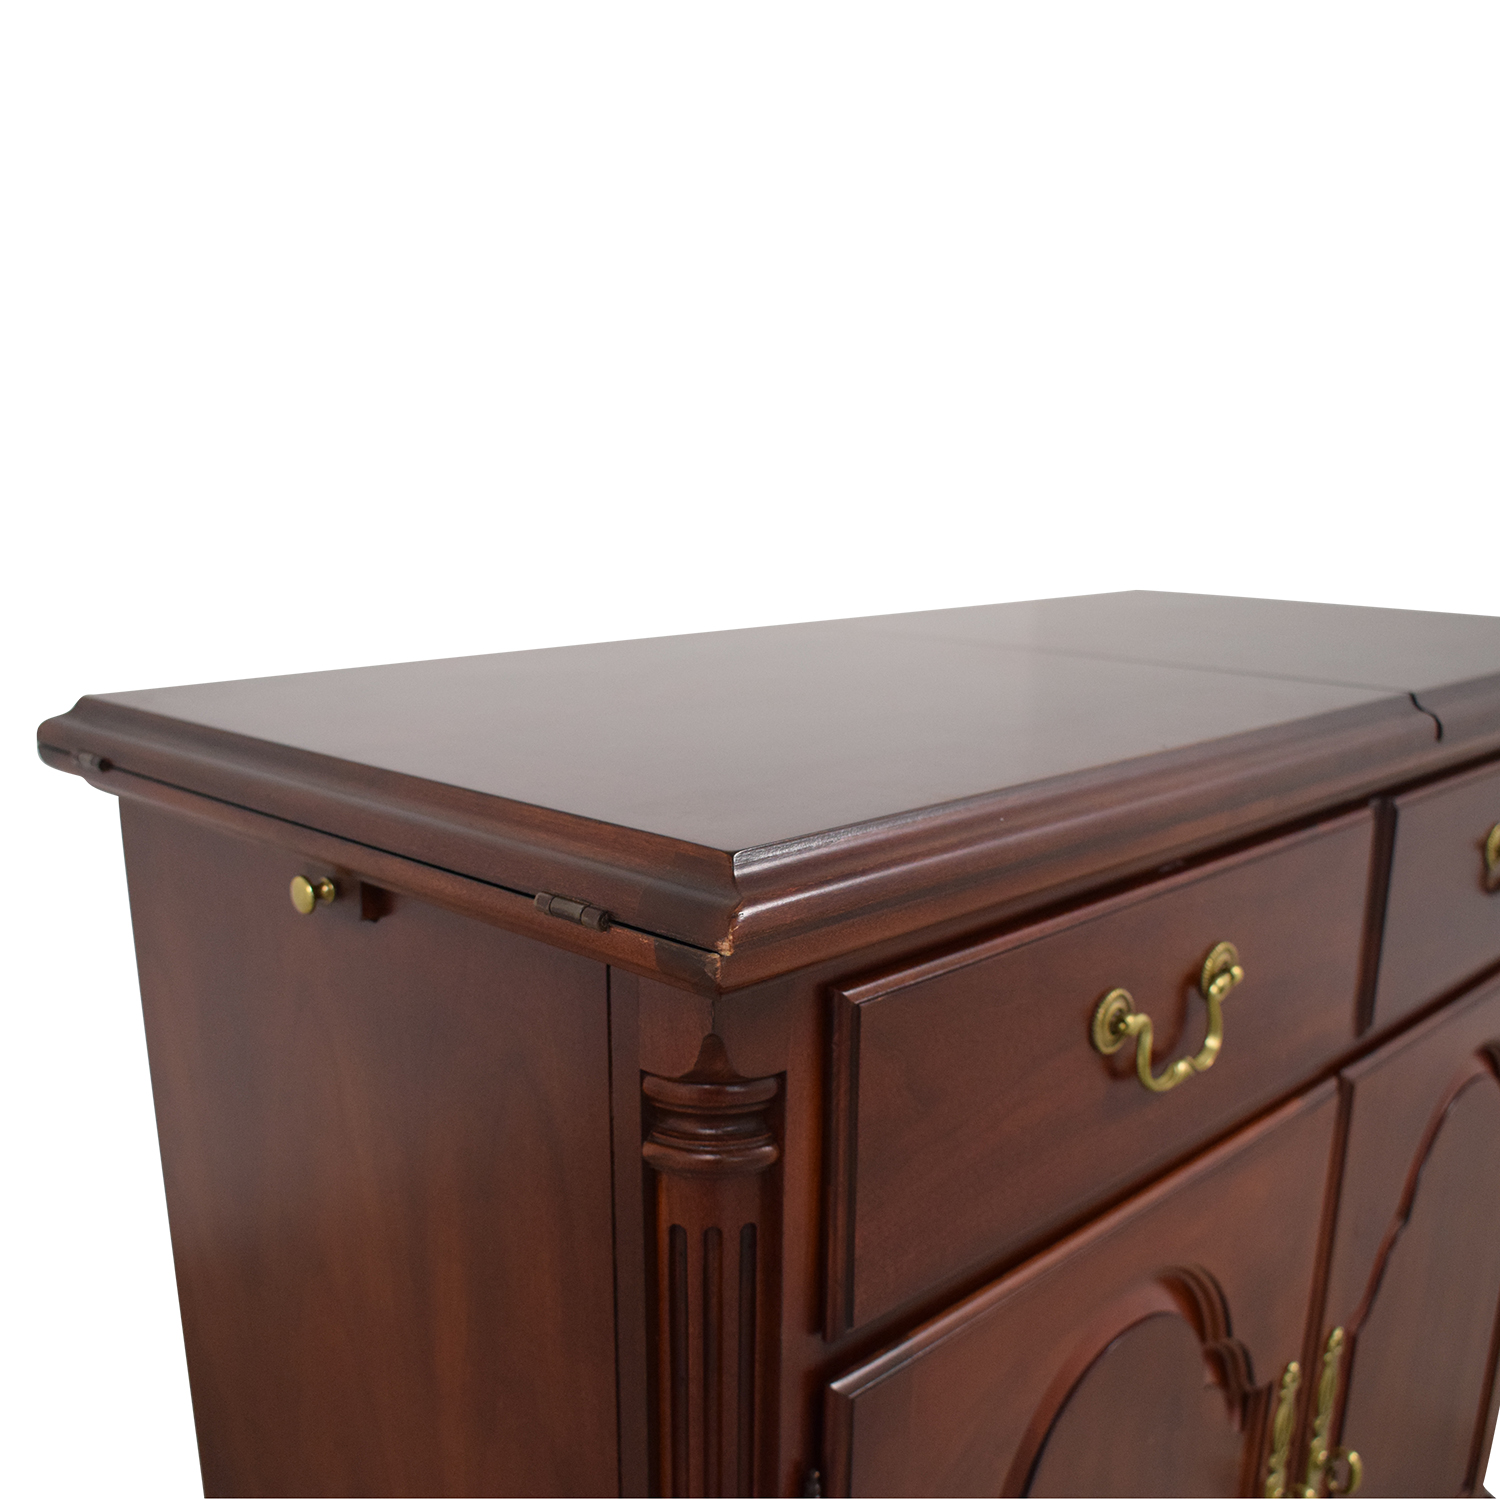 Thomasville Buffet Server / Storage